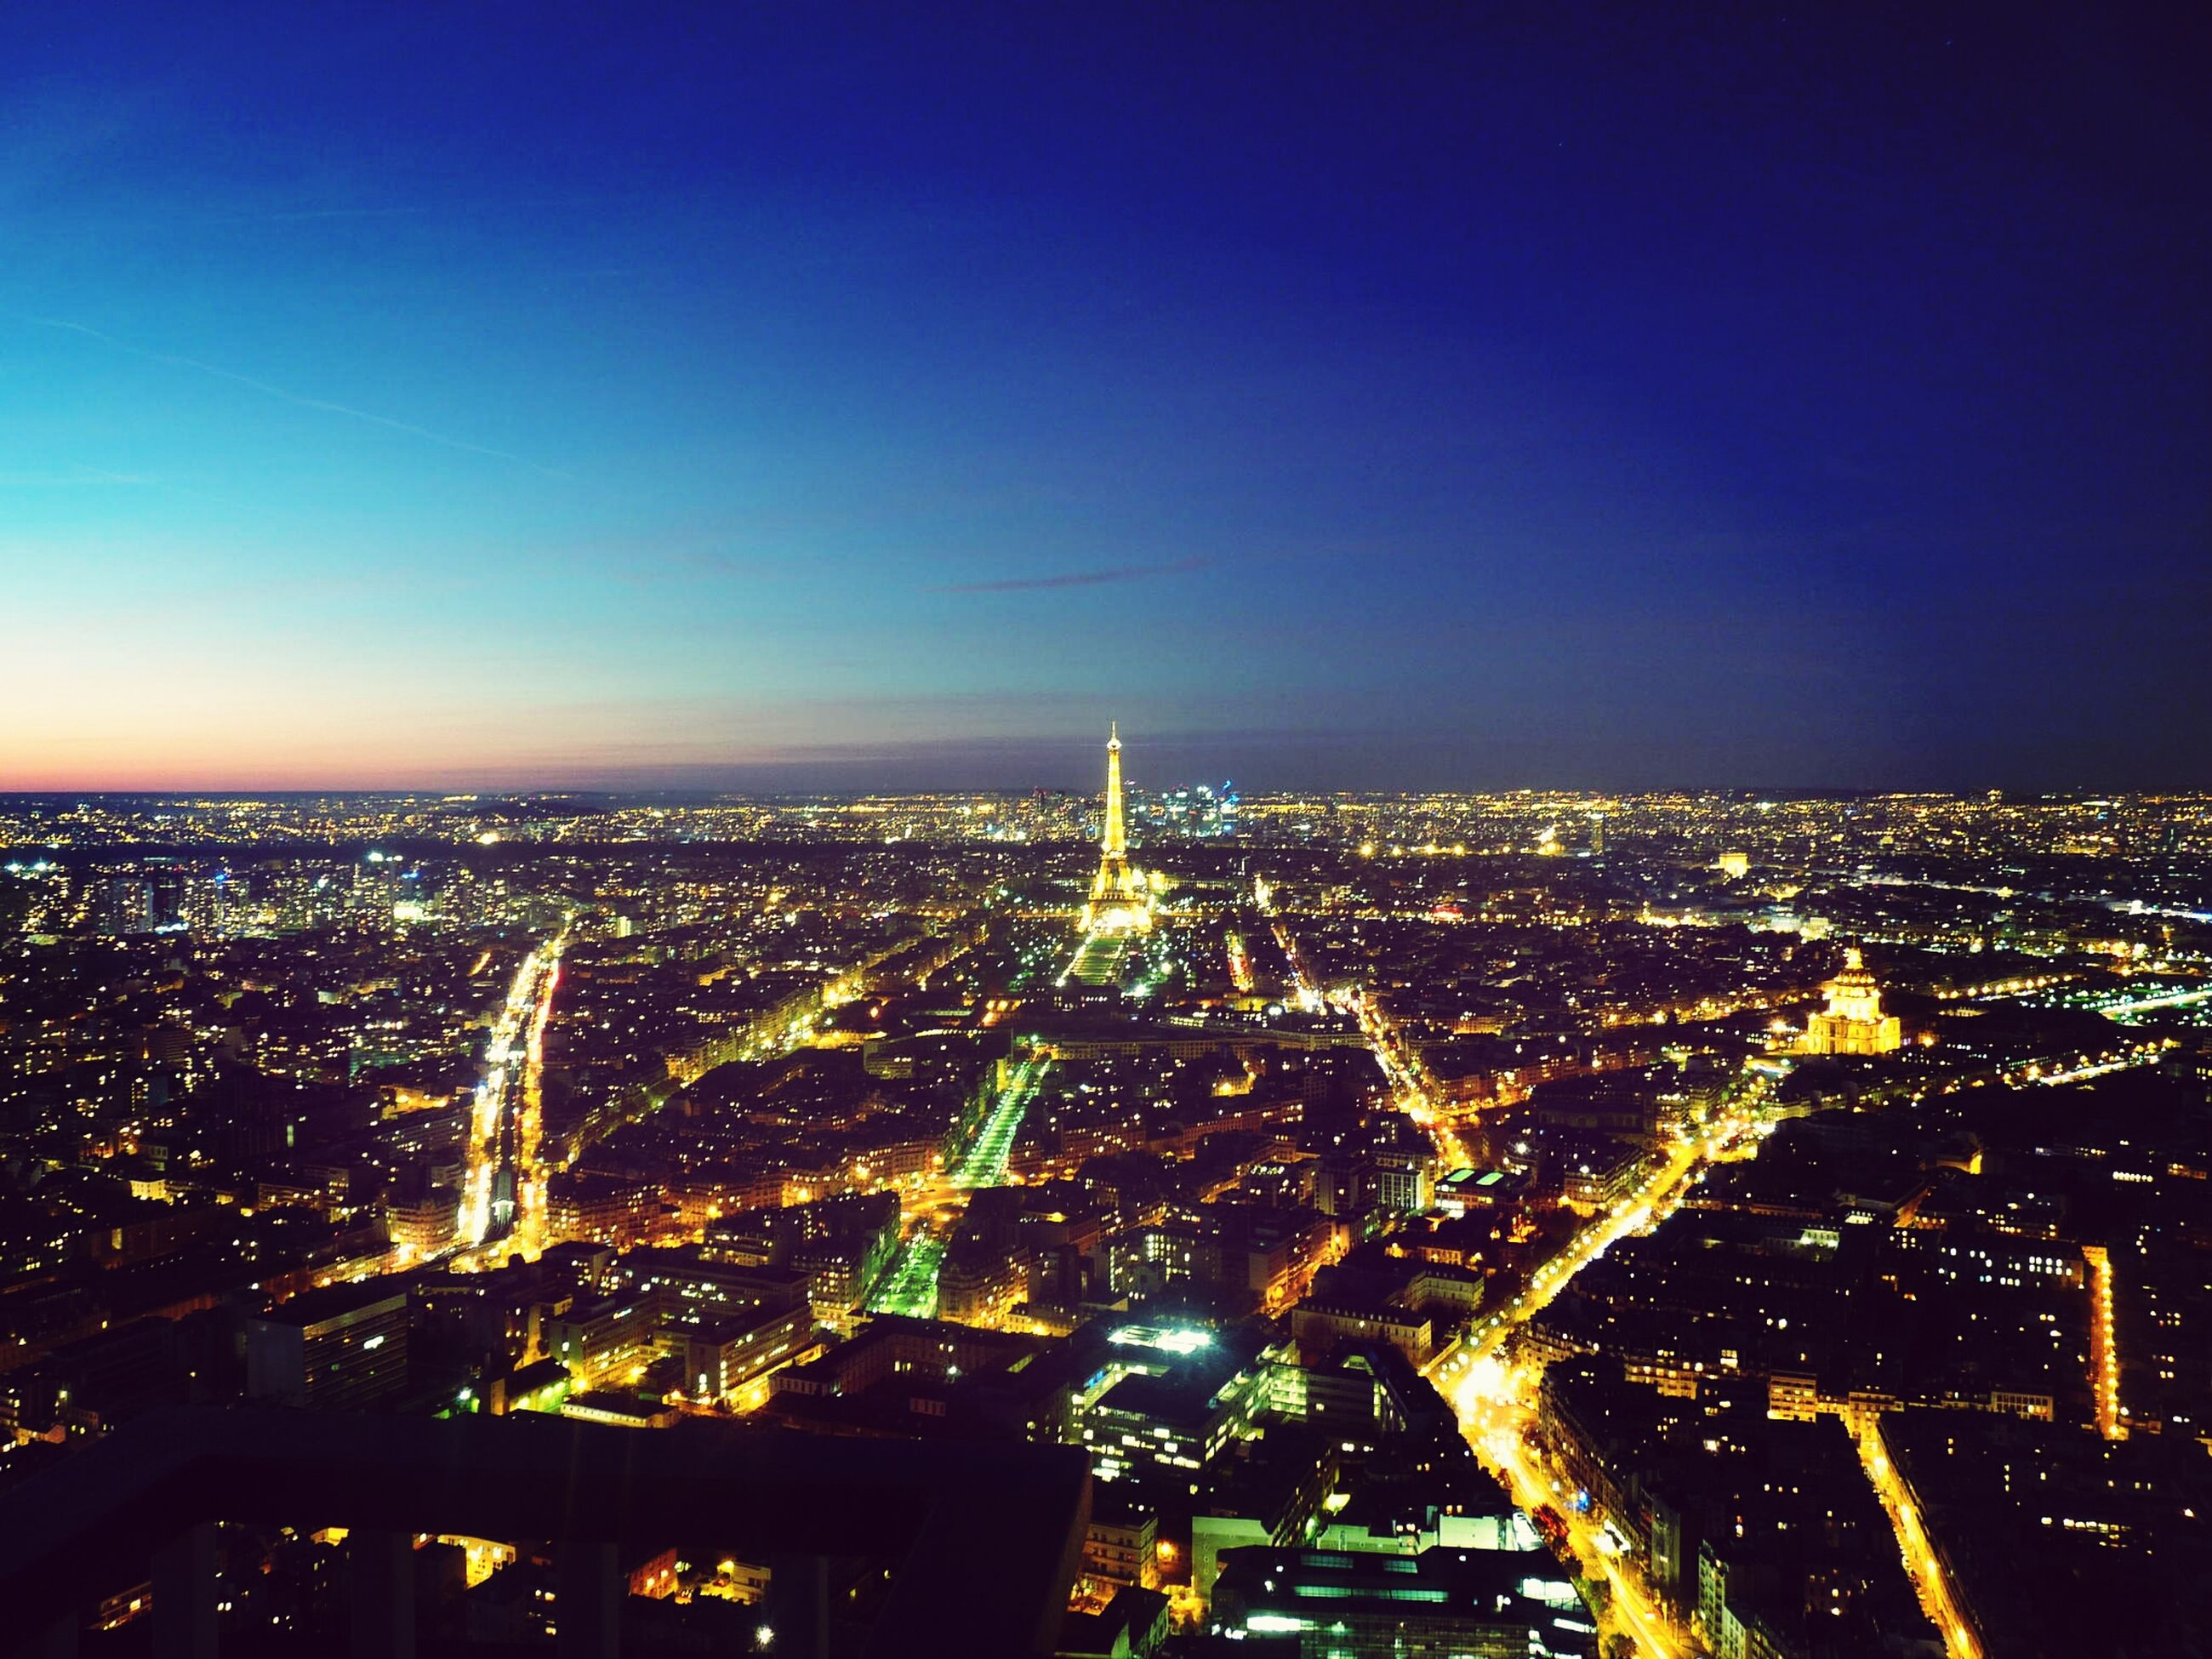 illuminated, cityscape, city, night, architecture, building exterior, built structure, high angle view, crowded, aerial view, city life, copy space, clear sky, skyscraper, sky, residential district, modern, capital cities, blue, tower